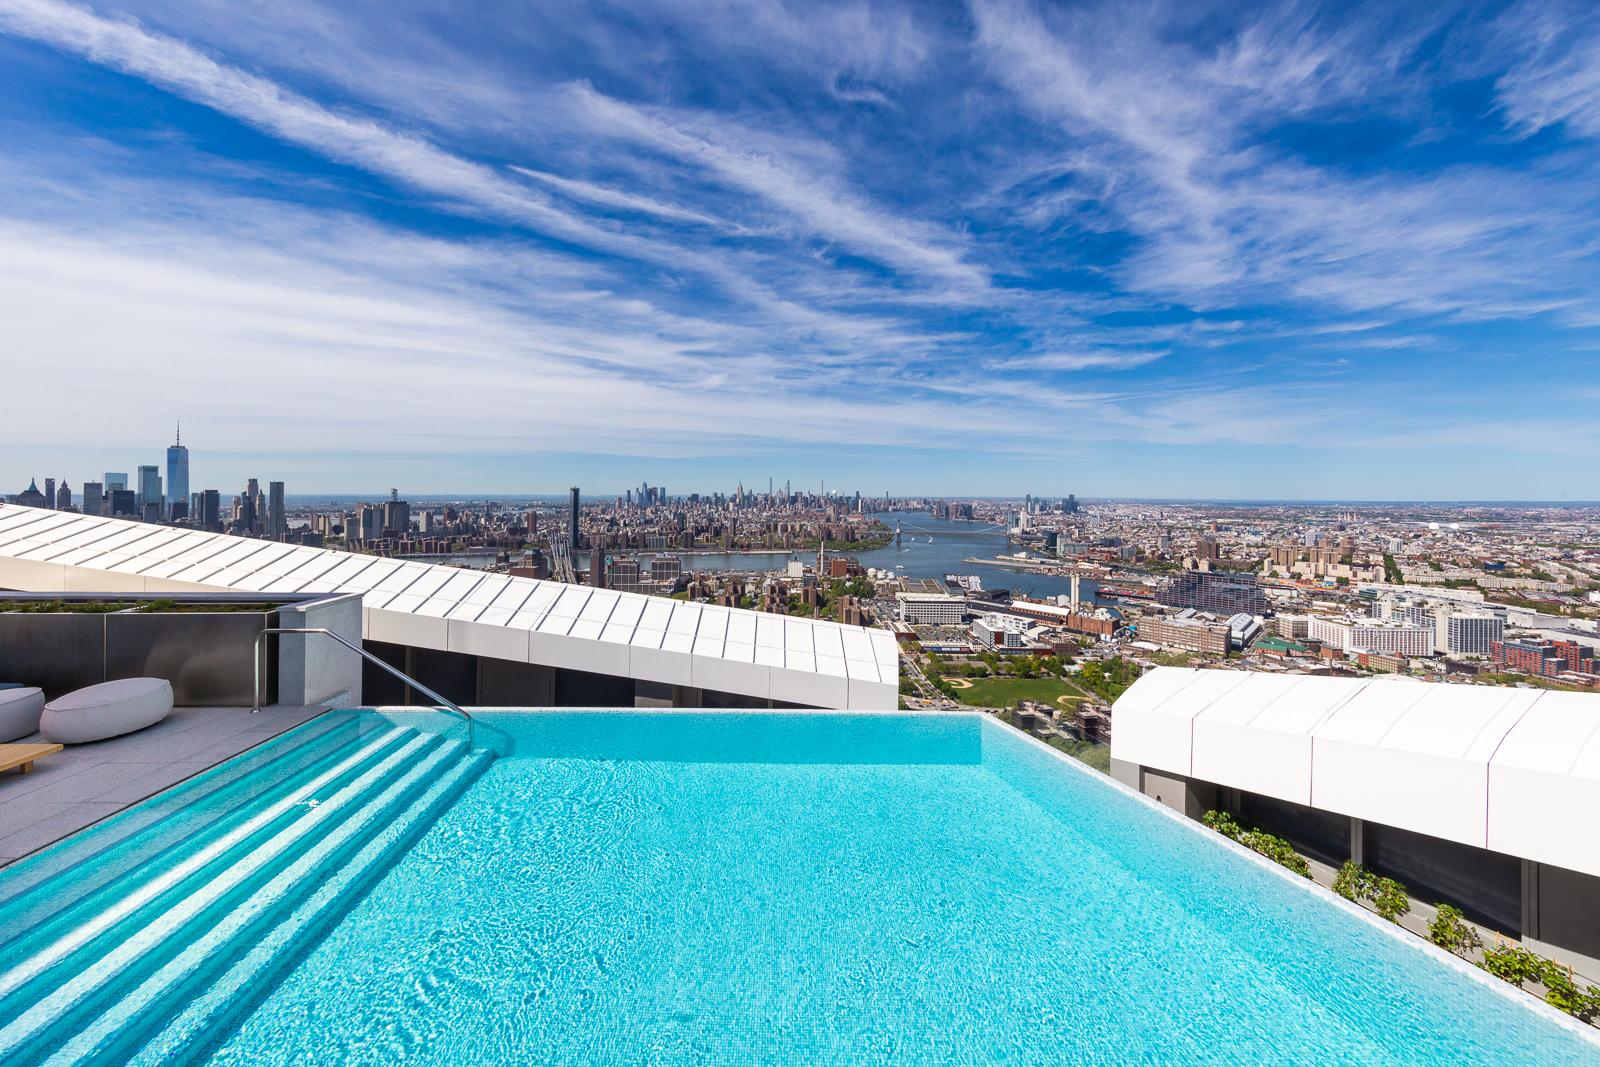 Brooklyn Point's swimming pool is situated 680 ft (207 m) above the city streets